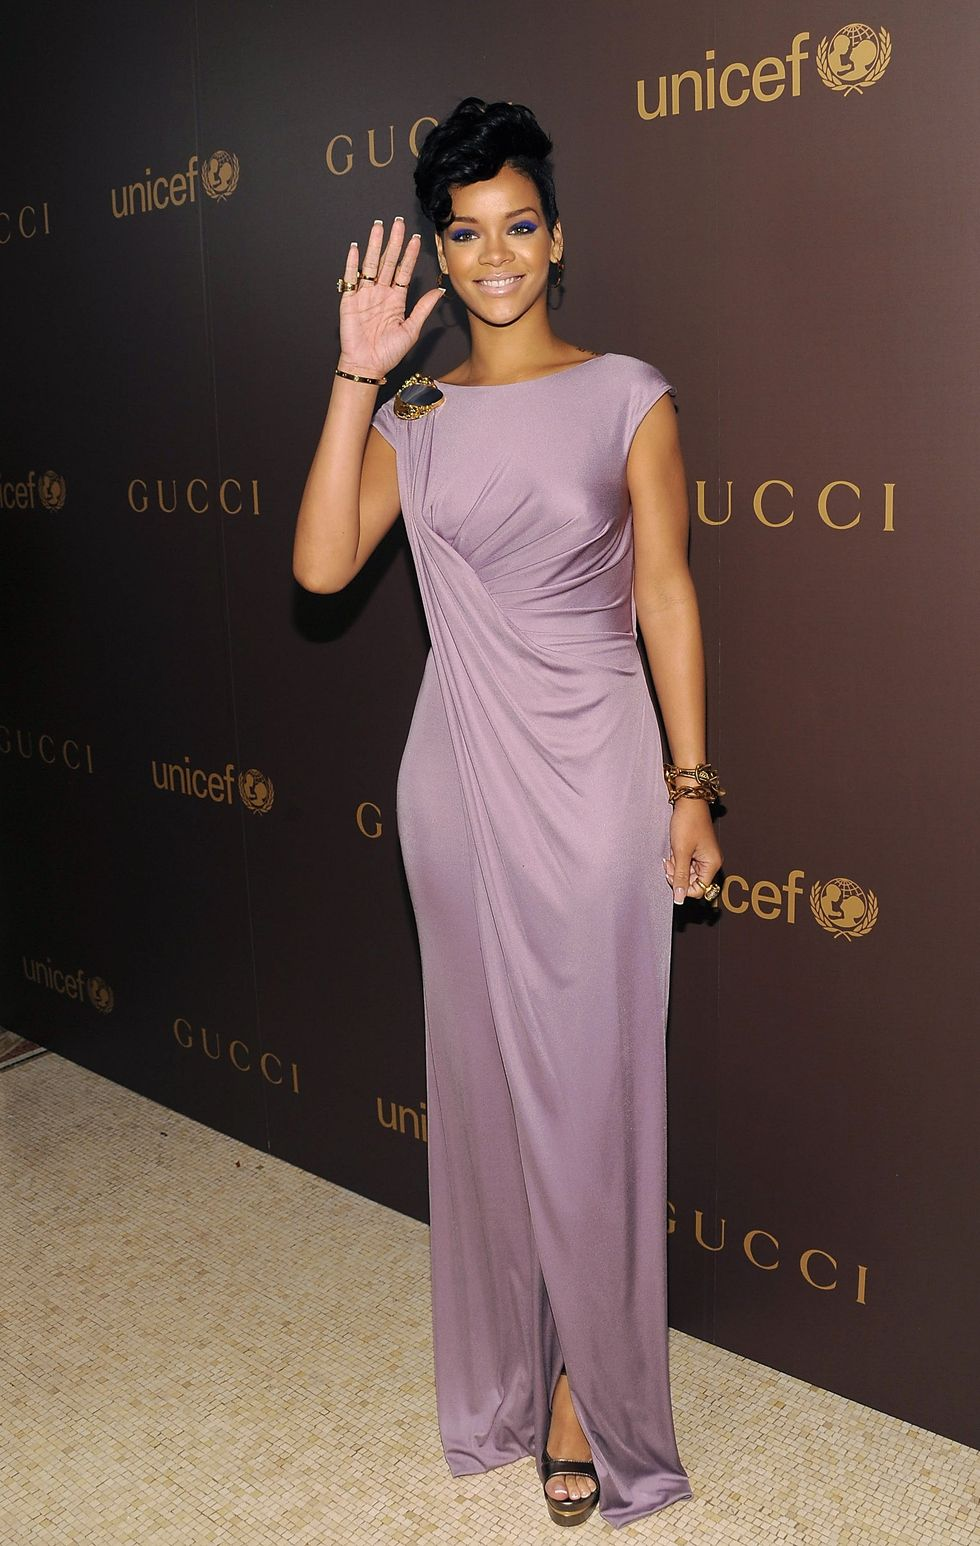 blake-lively-and-rihanna-gucci-unicef-dinner-at-the-oak-room-at-the-plaza-in-new-york-01